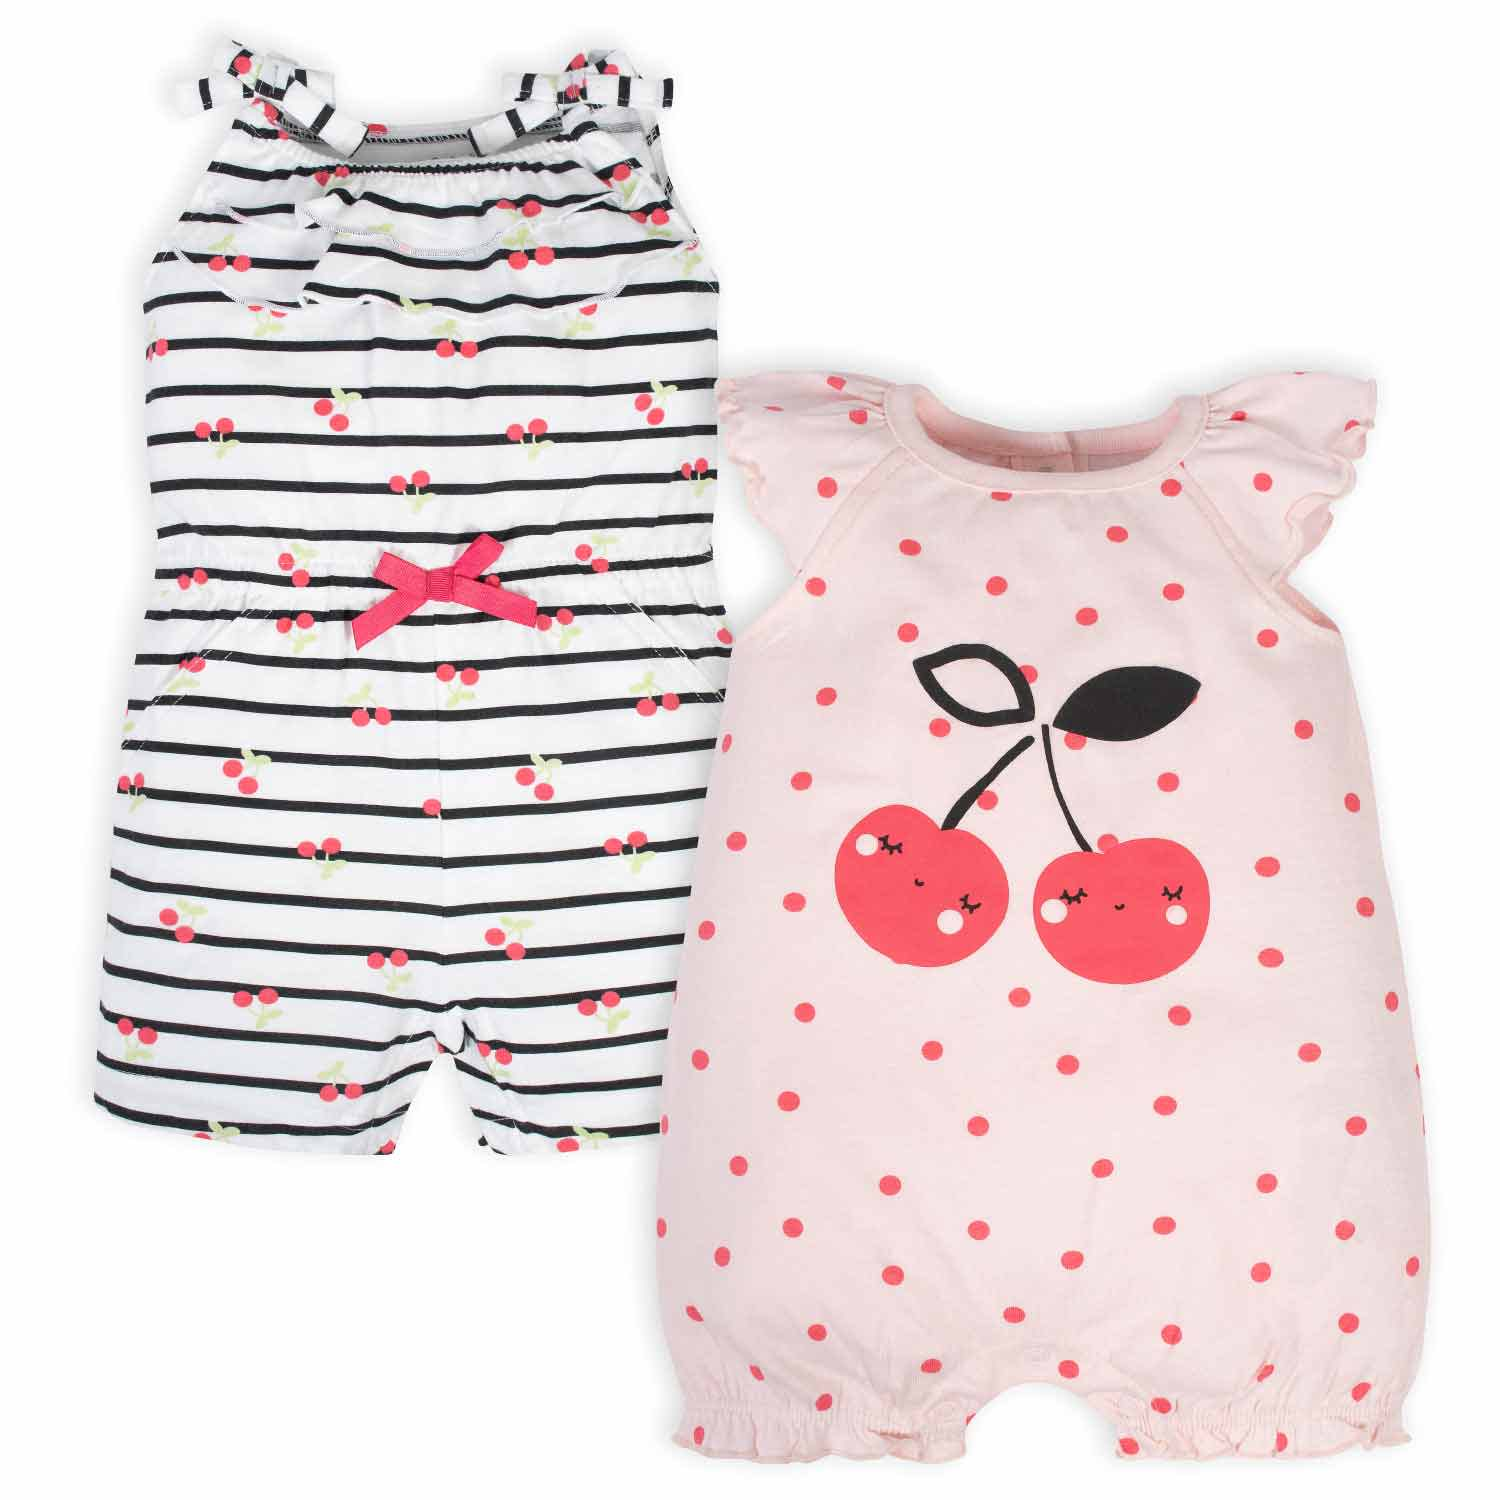 2-Pack Baby Girls Cherry Rompers